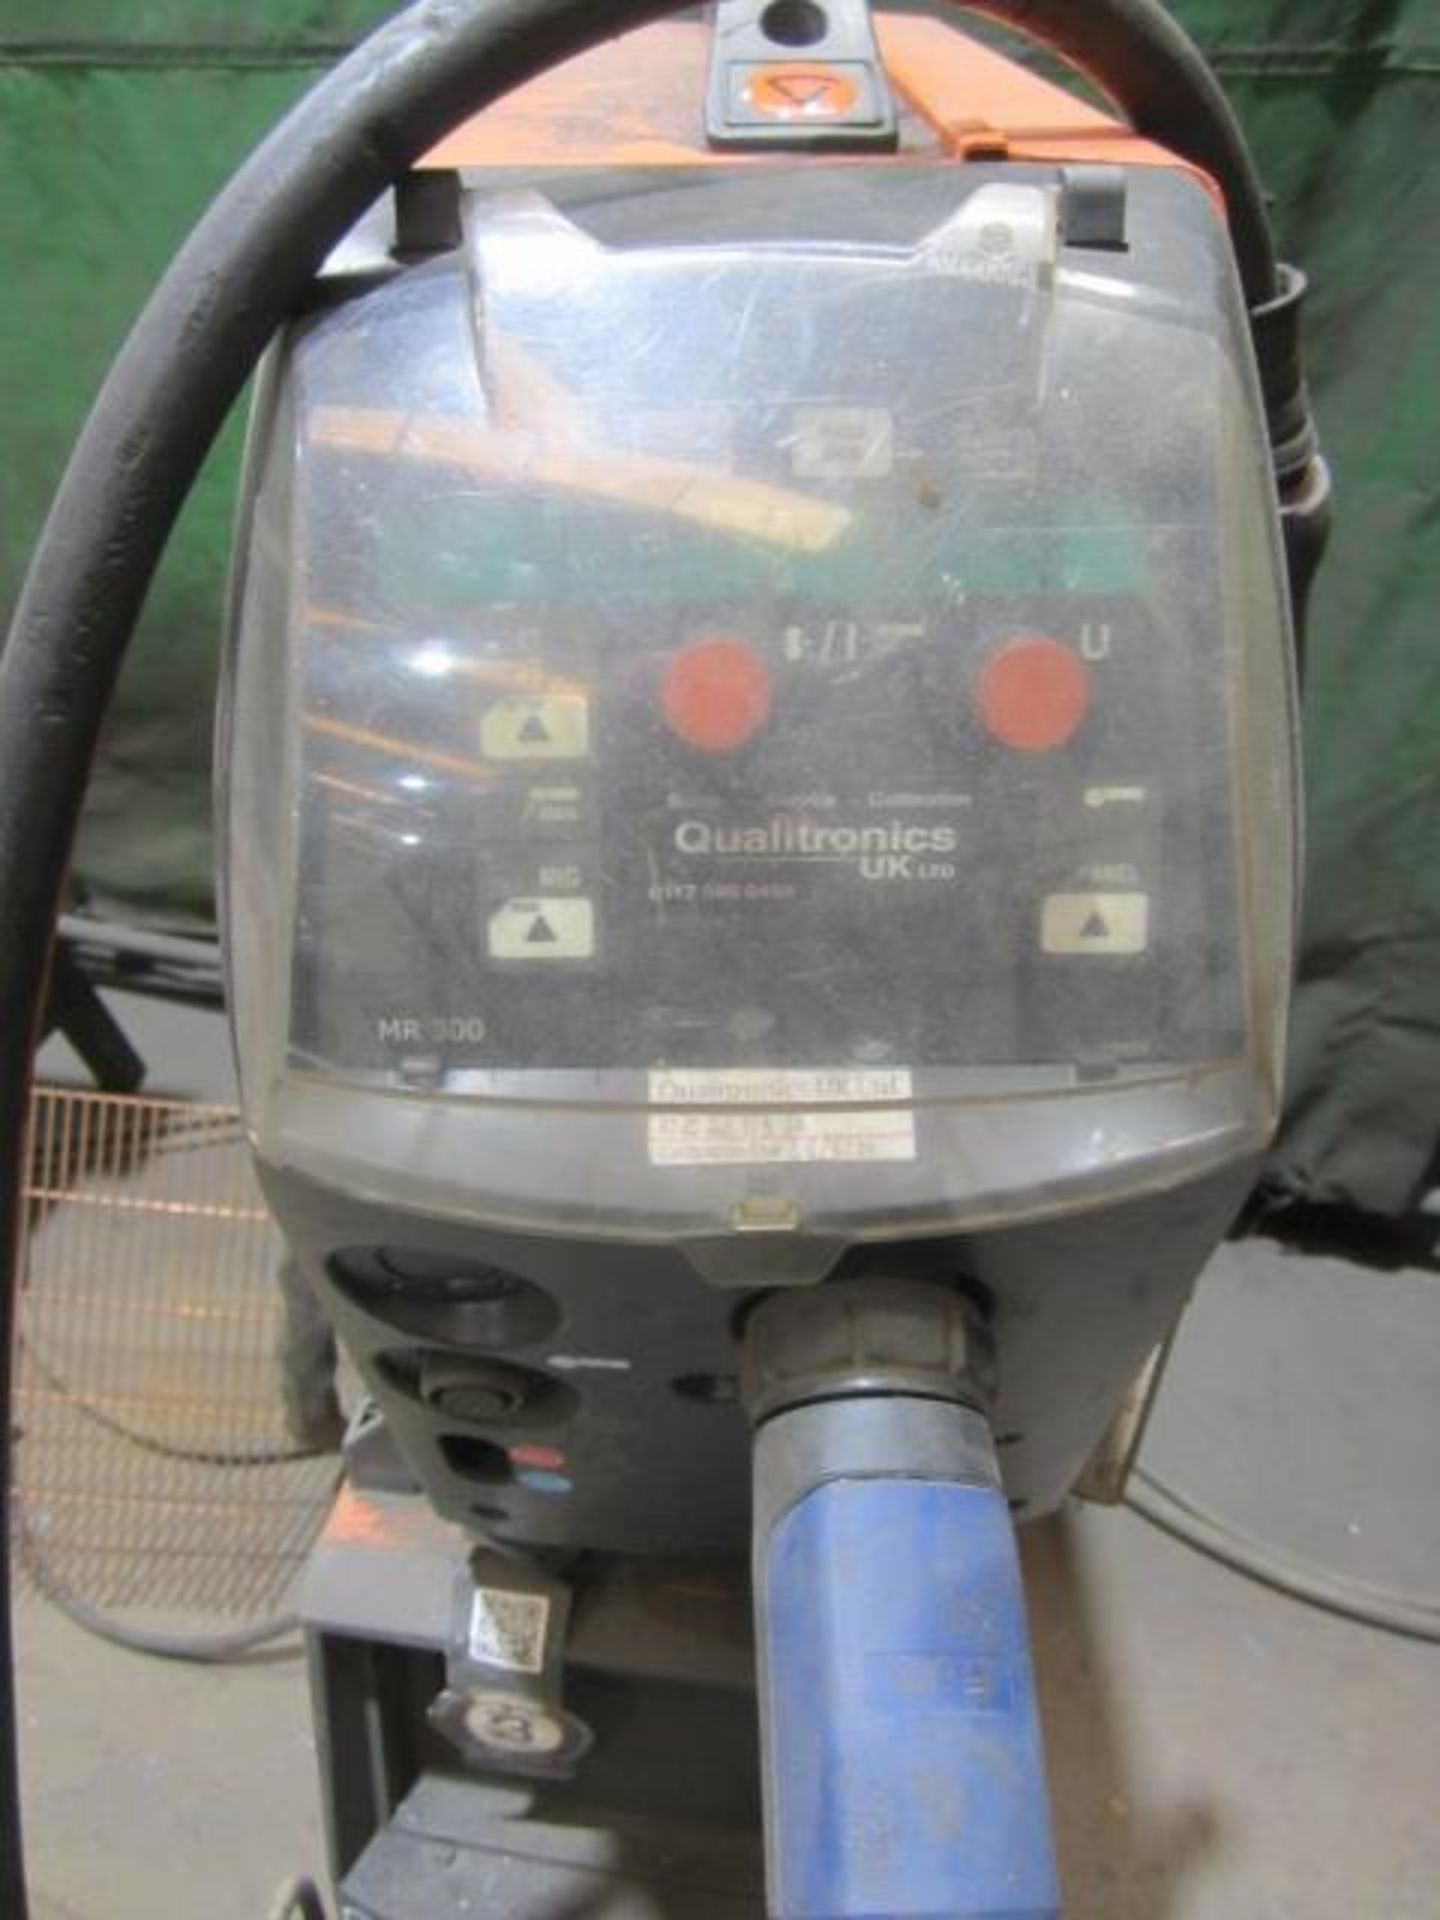 Kemppi Fast Mig M420 mig welder, serial no. 2674258, with Fast Mig MXF65 wire feeder, serial no. - Image 4 of 8